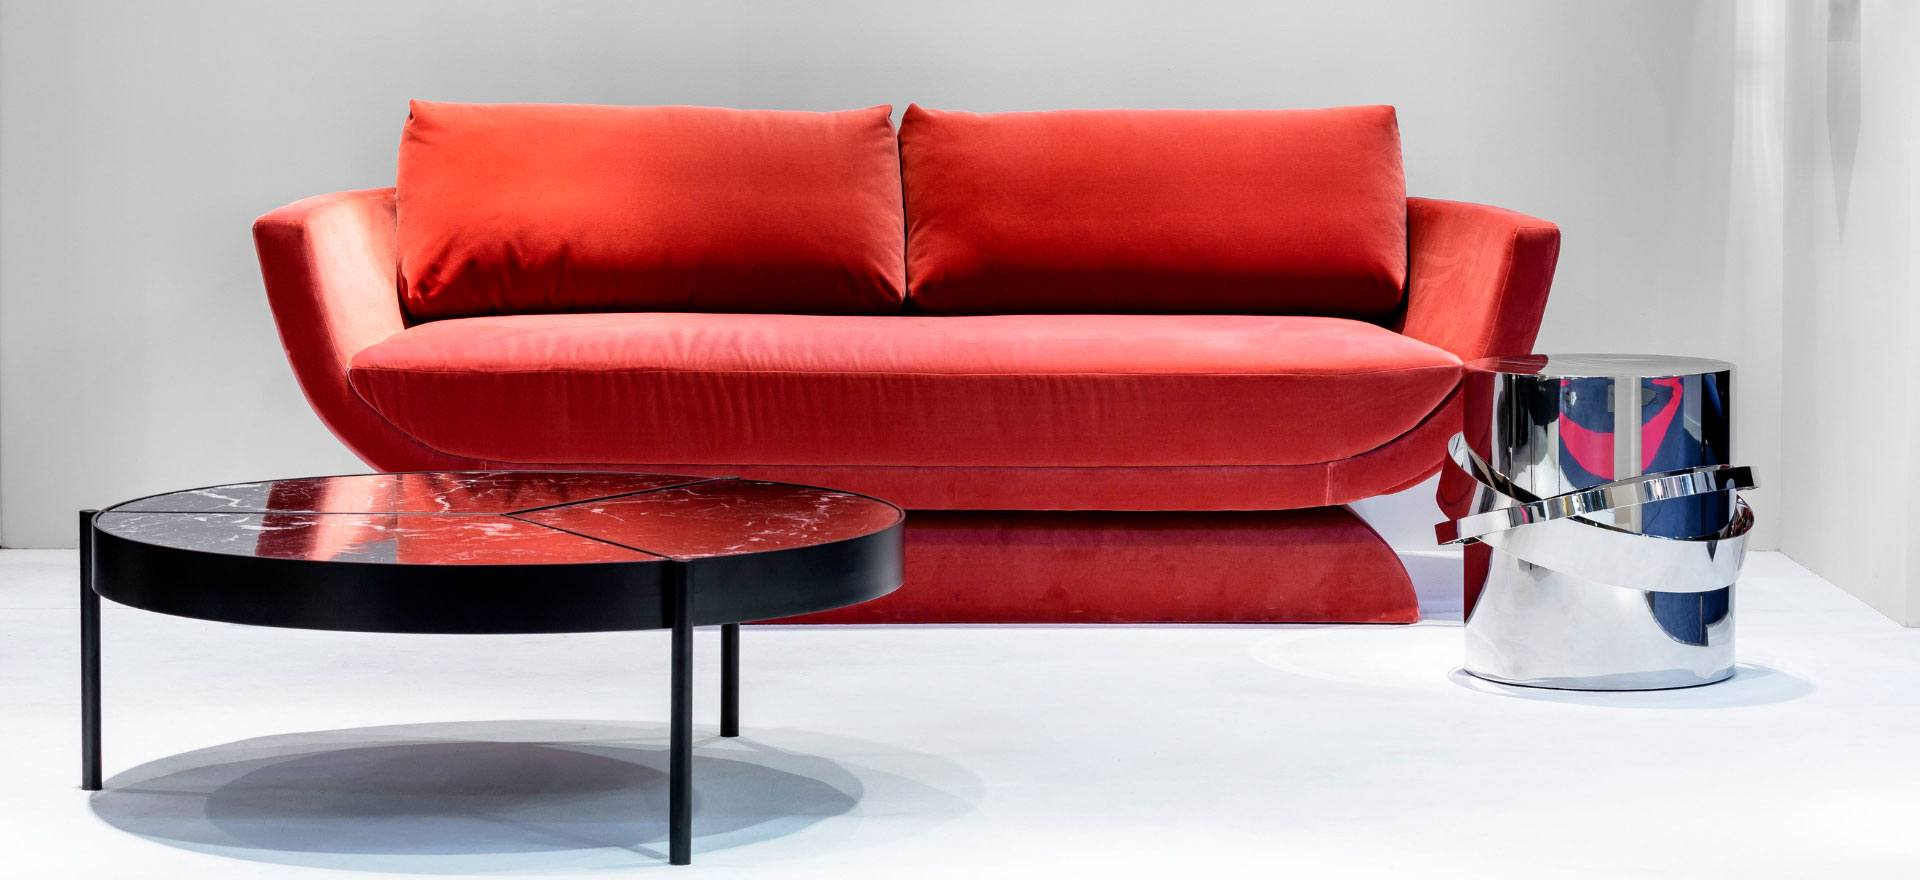 Kassavello - Bespoke and Designer Furniture